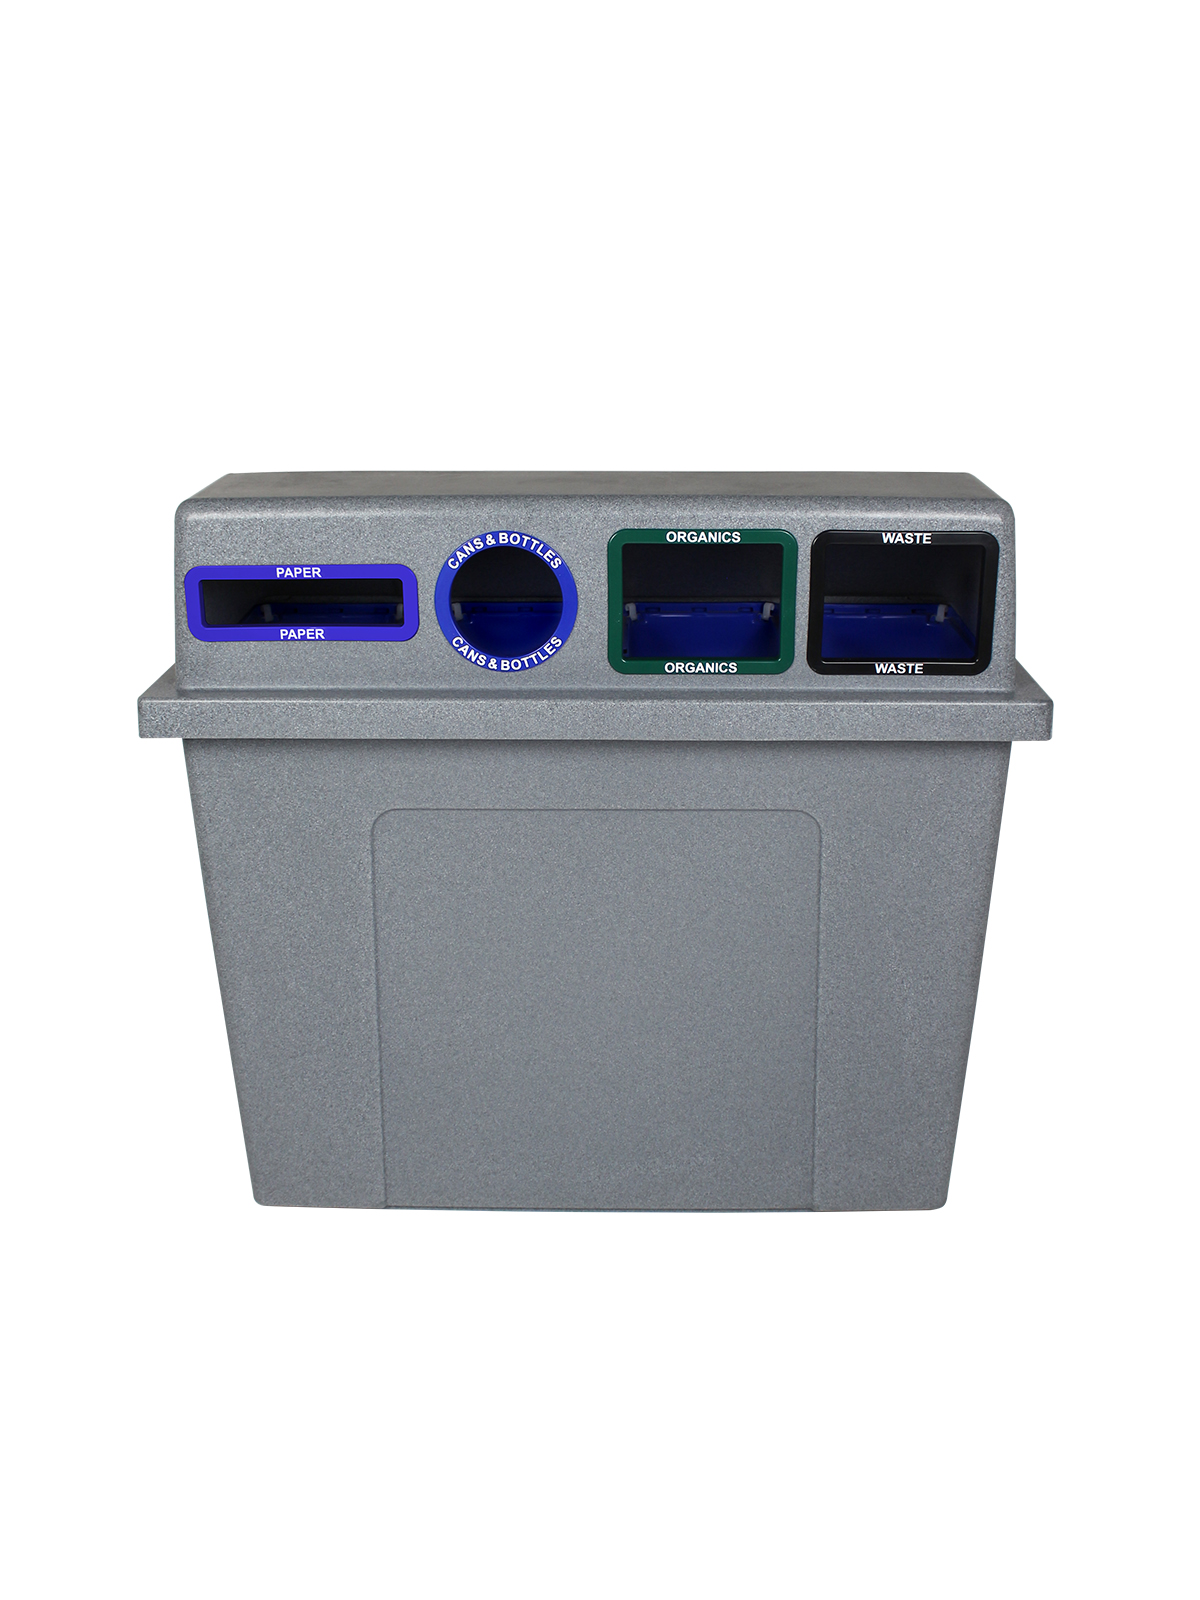 SUPER SORTER - Quad - Hd - Paper-Cans & Bottles-Organics-Waste - Slot-Circle-Full-Full - Greystone-Blue-Blue-Green-Black